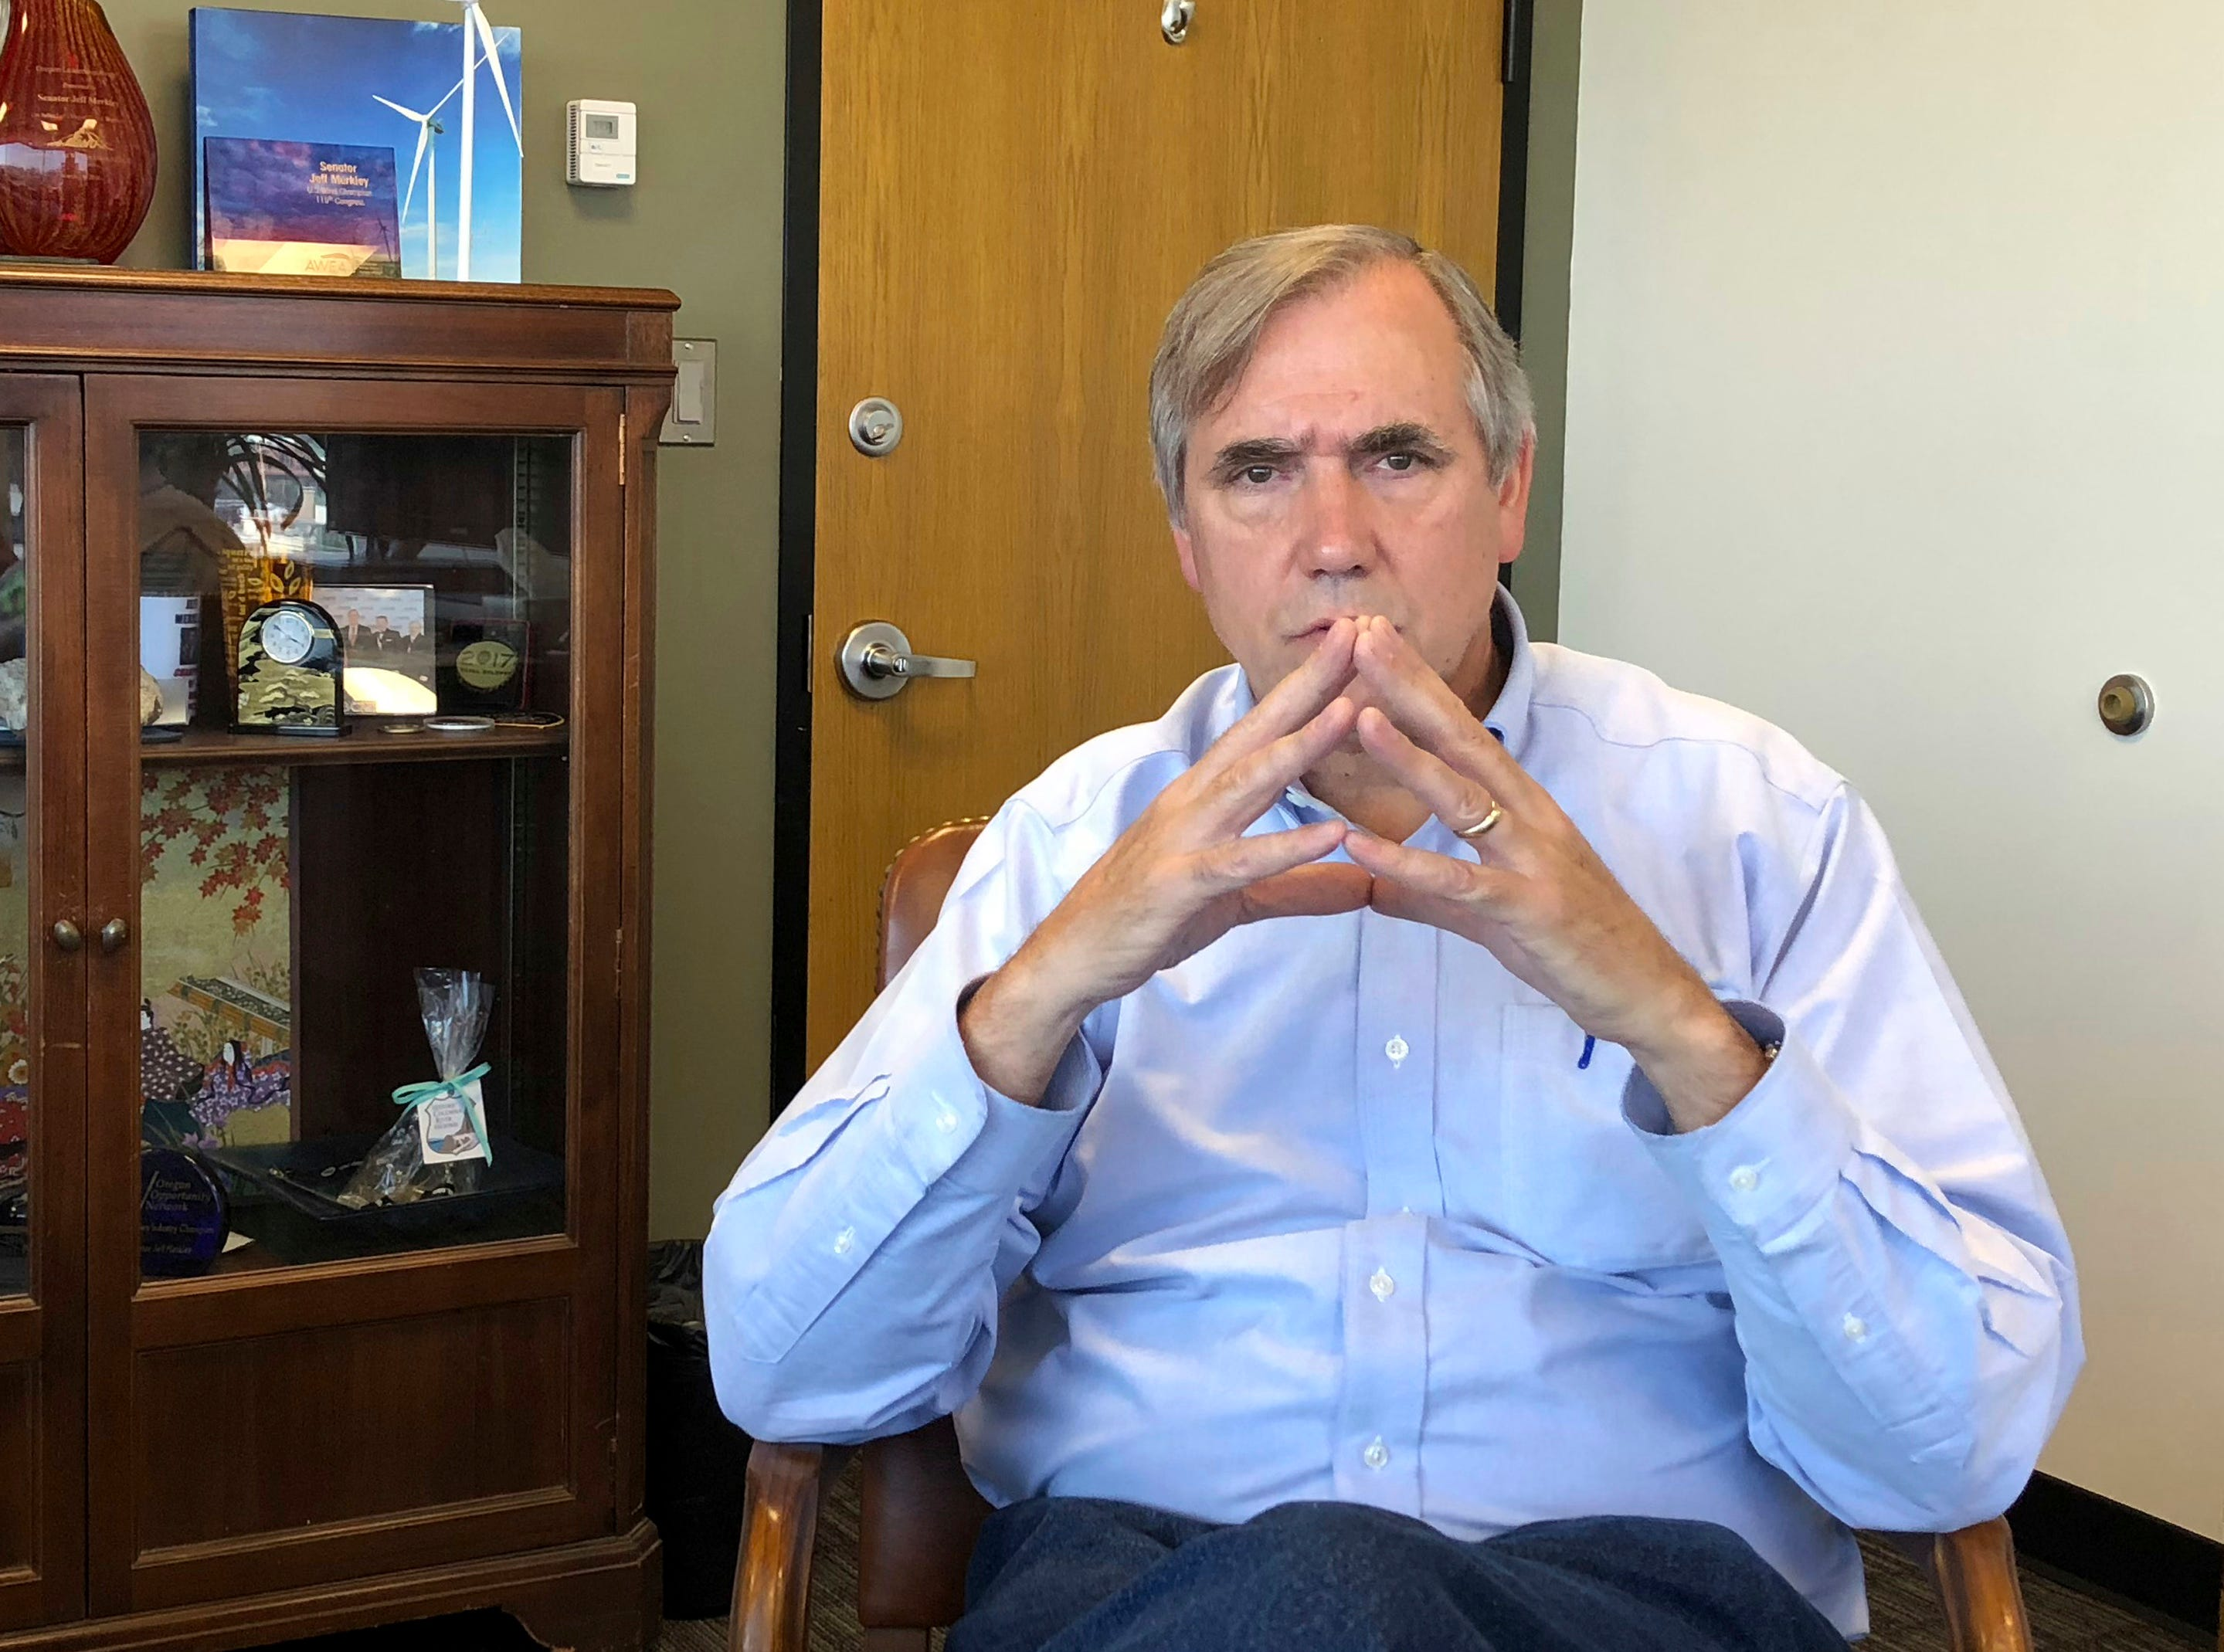 Sen Jeff Merkley, D-Ore., is shown during an interview in his office in Portland, Ore., Sept. 7, 2018. Merkley, a frequent critic of President Donald Trump, is seriously considering a run for the White House.